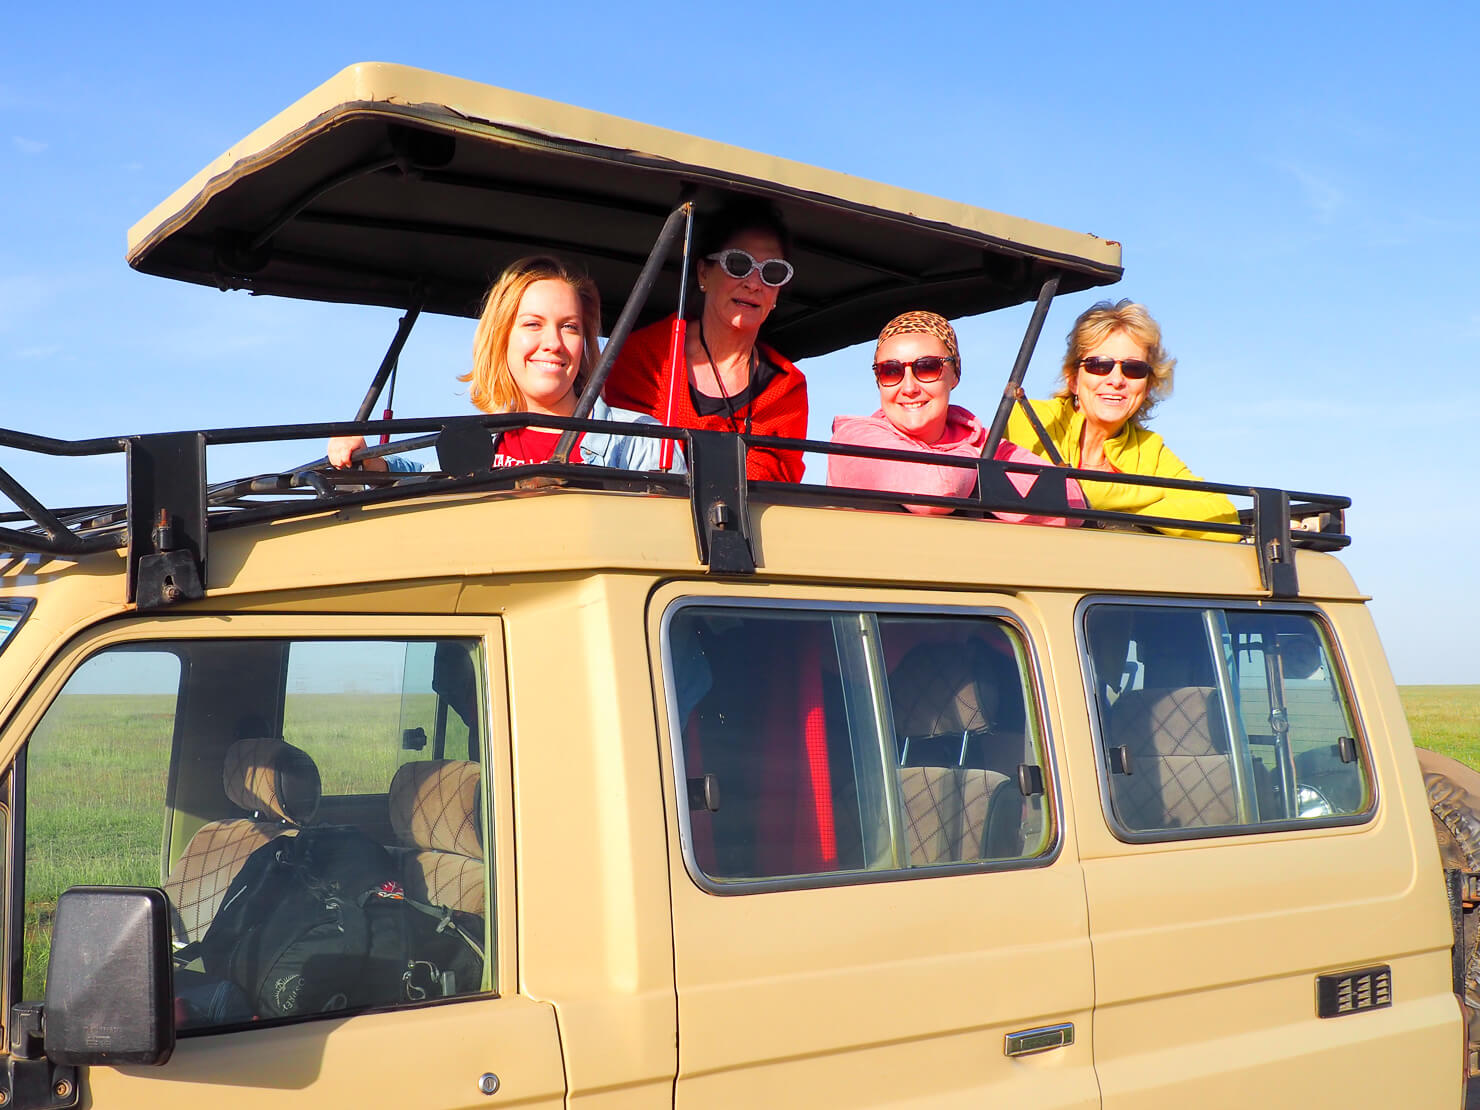 Serengeti Safari - Rock My Adventure